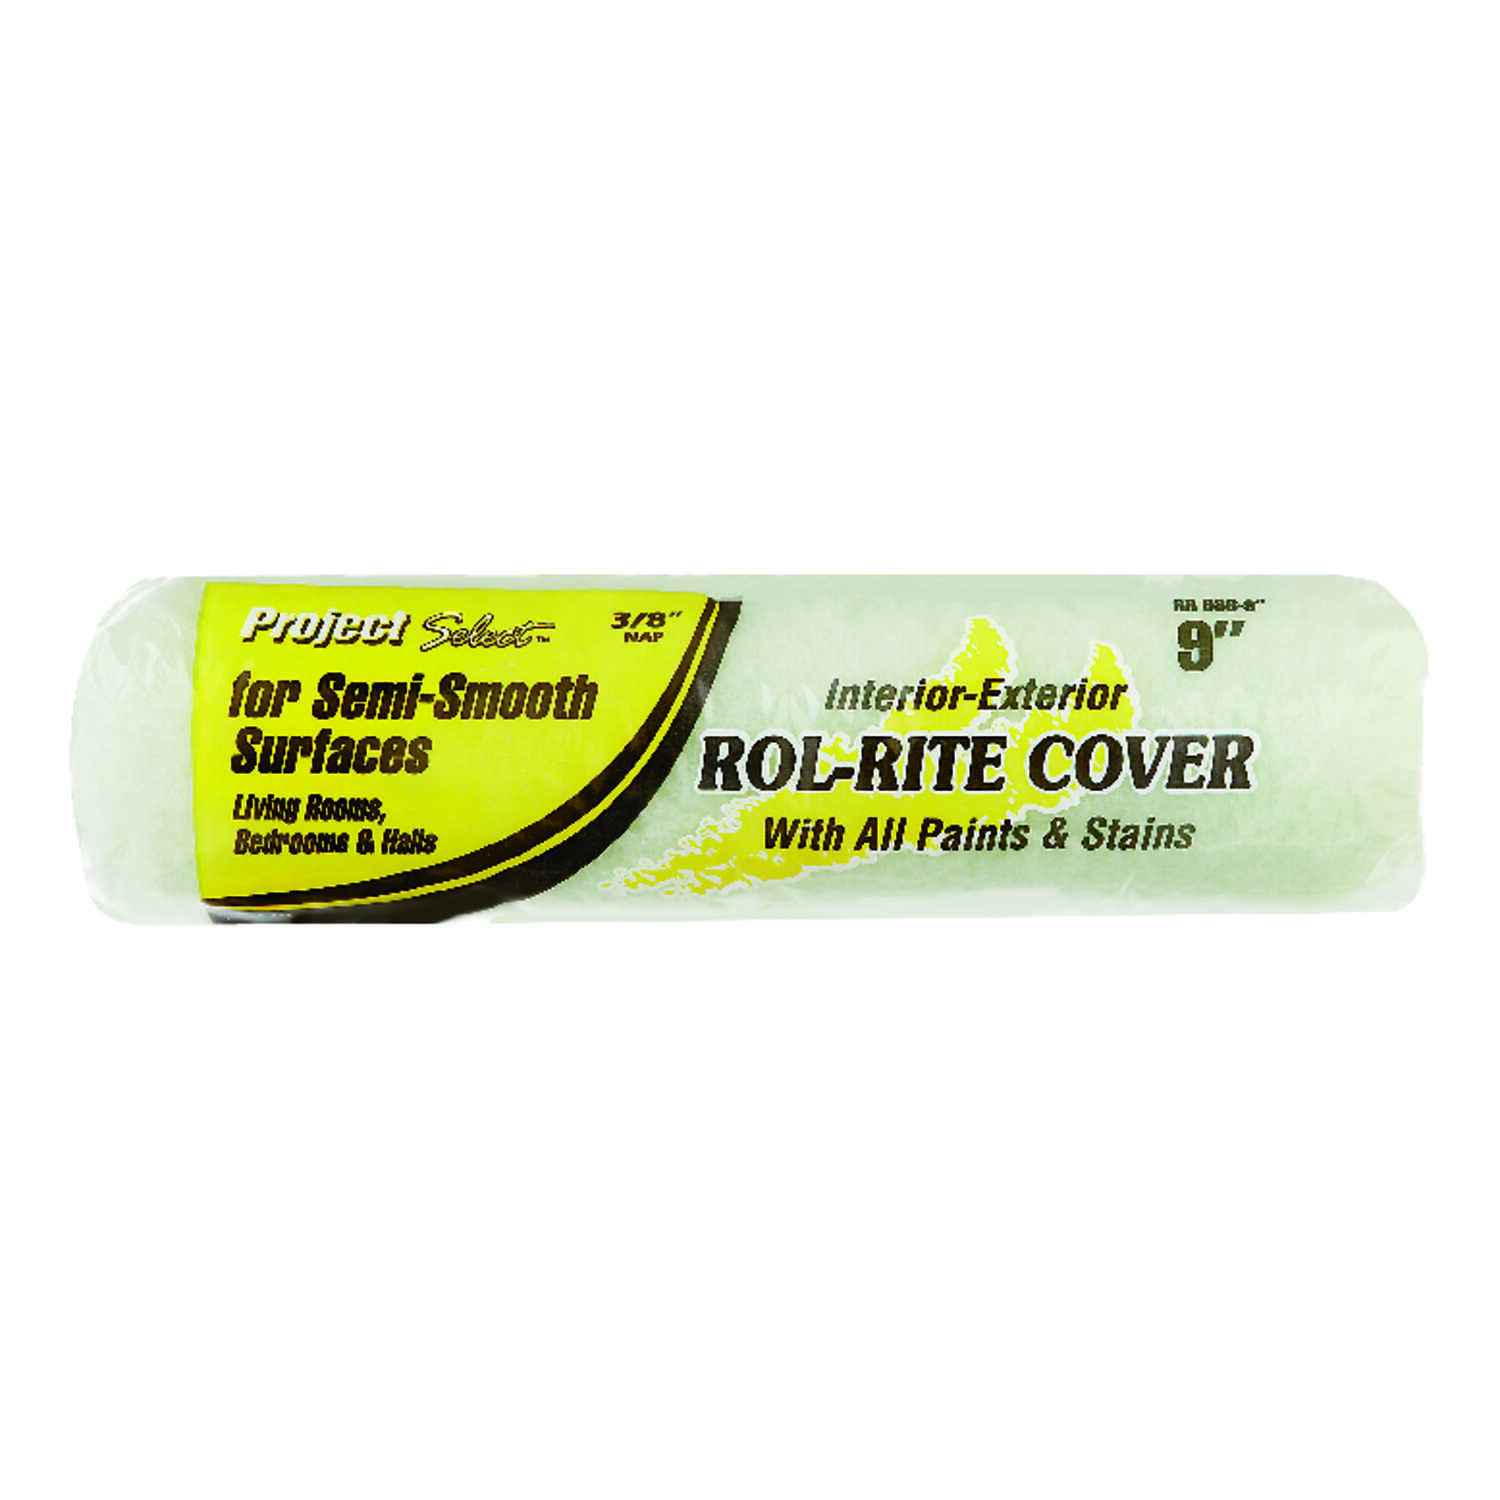 Project Select  Rol-Rite  Polyester  3/8 in.  x 9 in. W Regular  Paint Roller Cover  For Semi-Smooth